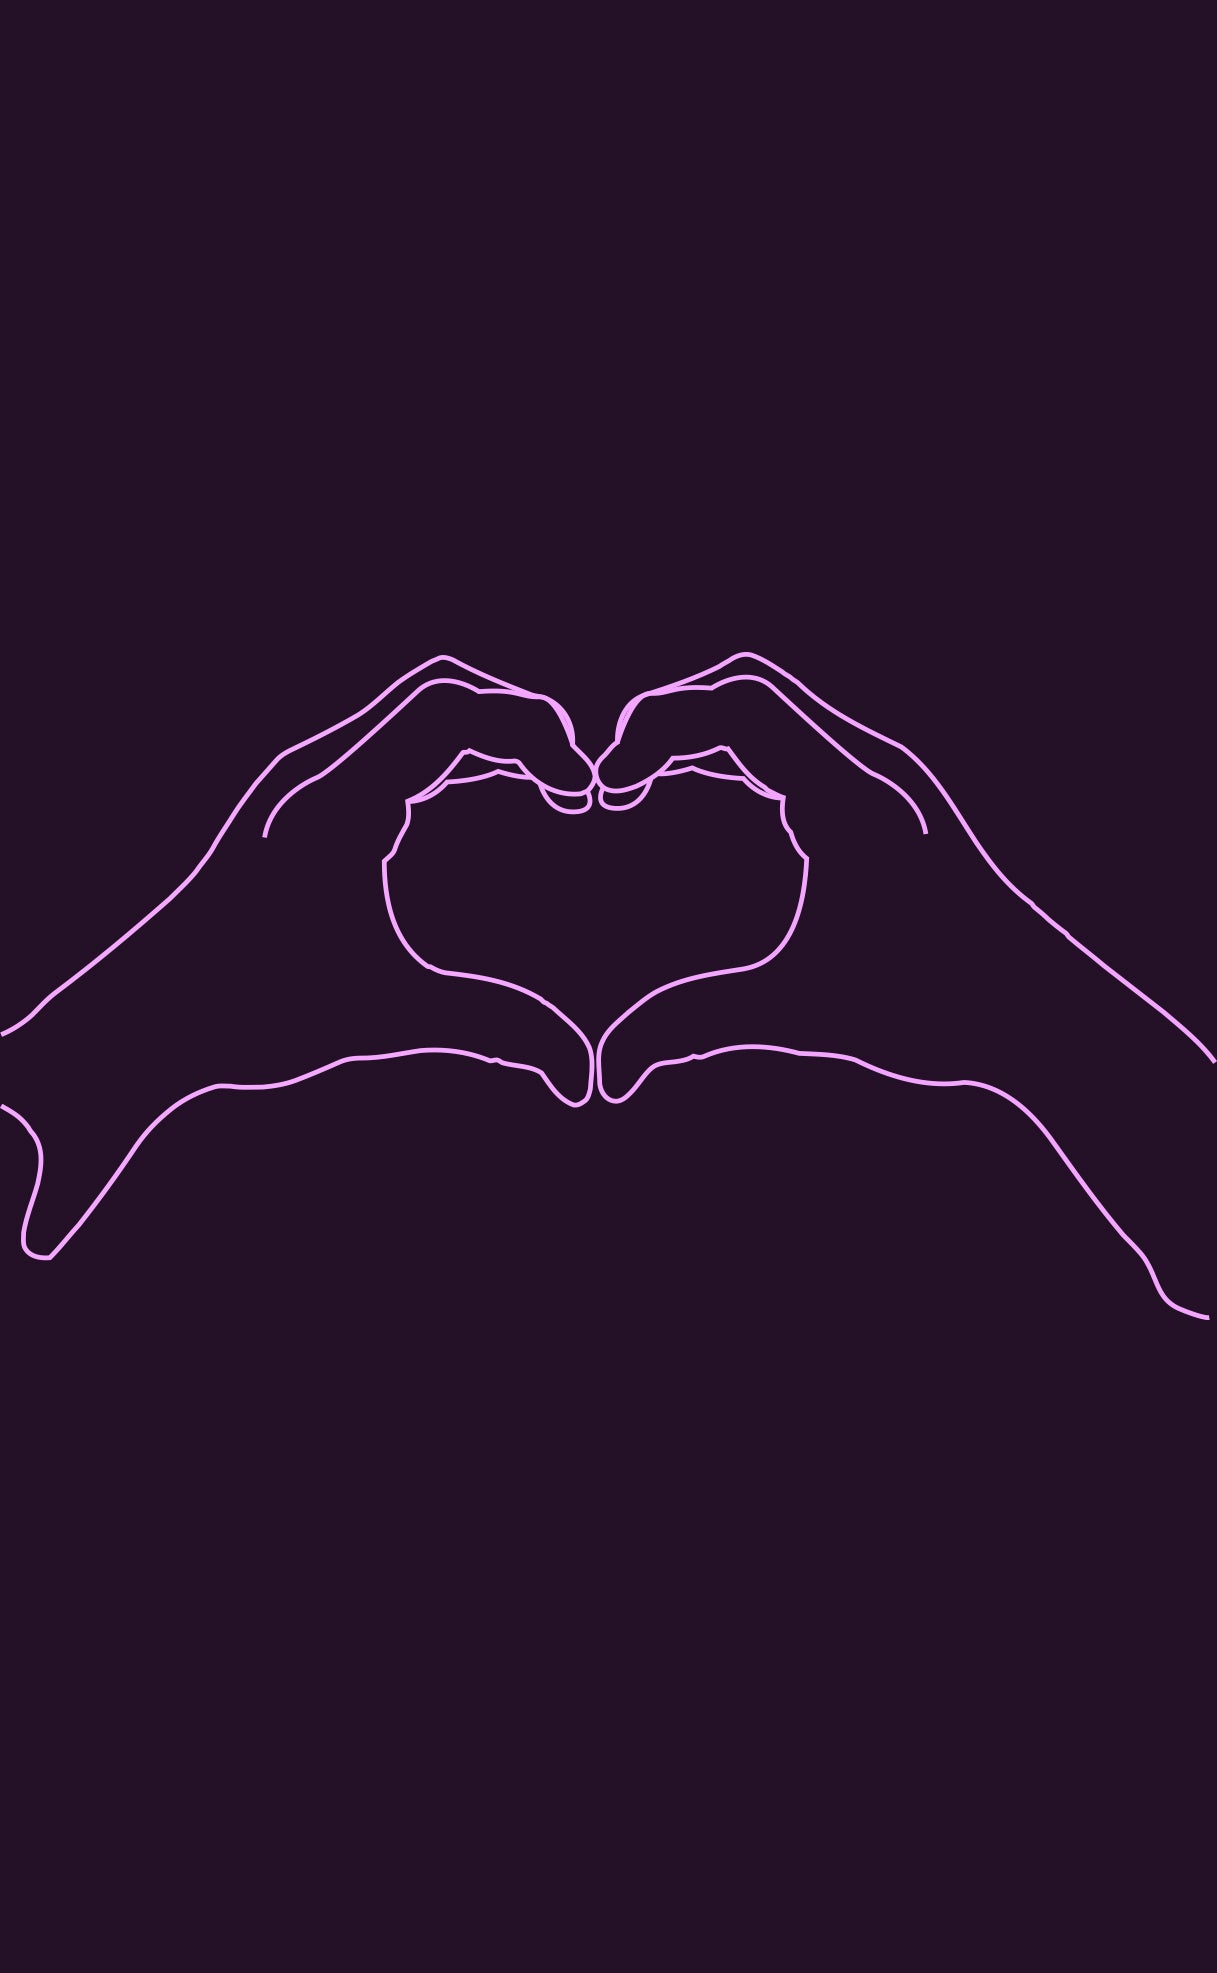 black and purple wall art, two hands making a heart shape